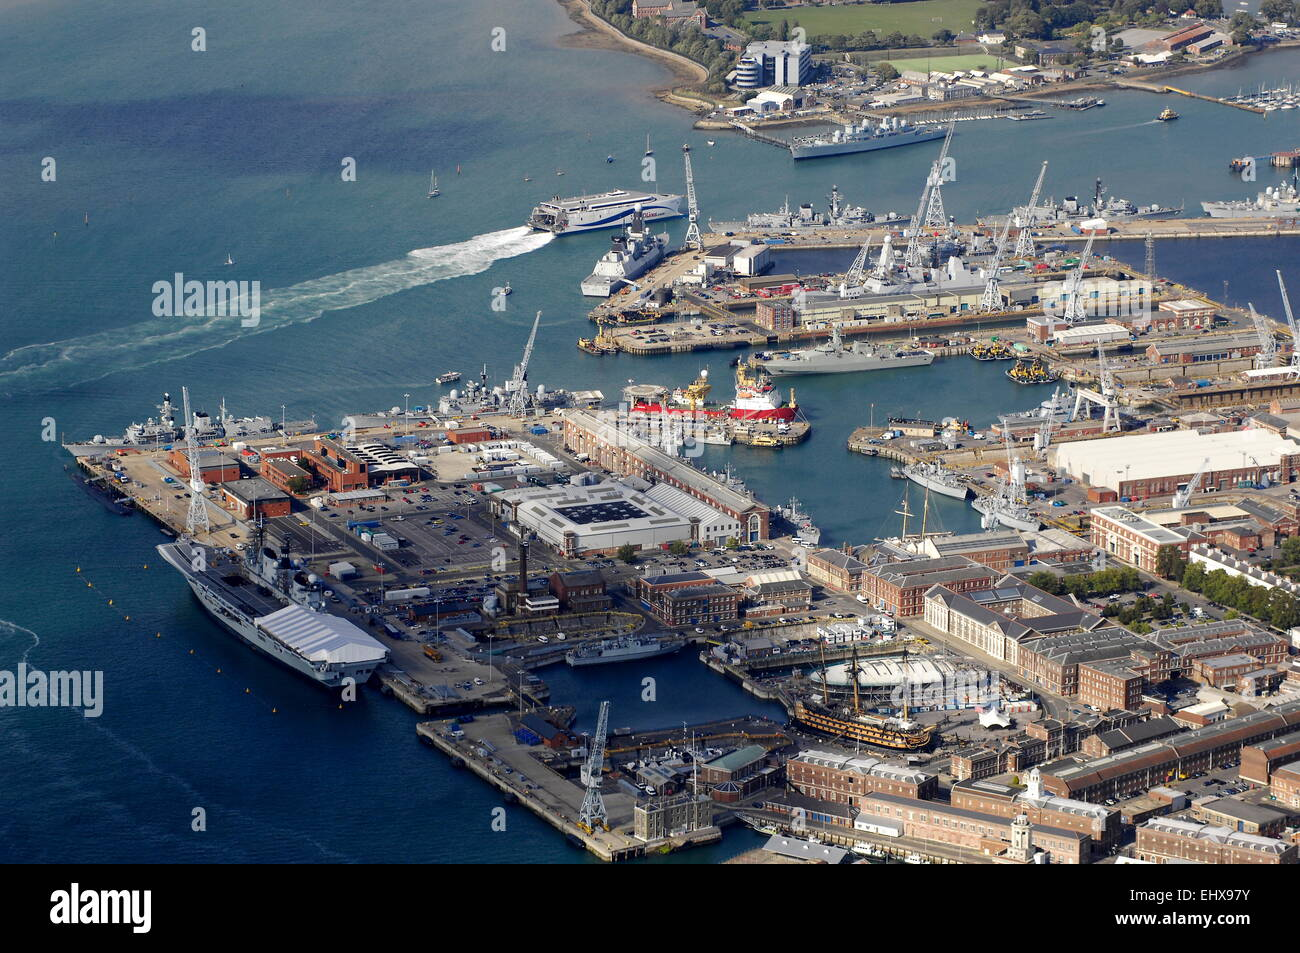 AJAXNETPHOTO. -  24TH AUGUST, 2011. PORTSMOUTH, ENGLAND. - NAVAL BASE, AIRCRAFT CARRIER INVINCIBLE ALONGSIDE (LEFT). - Stock Image